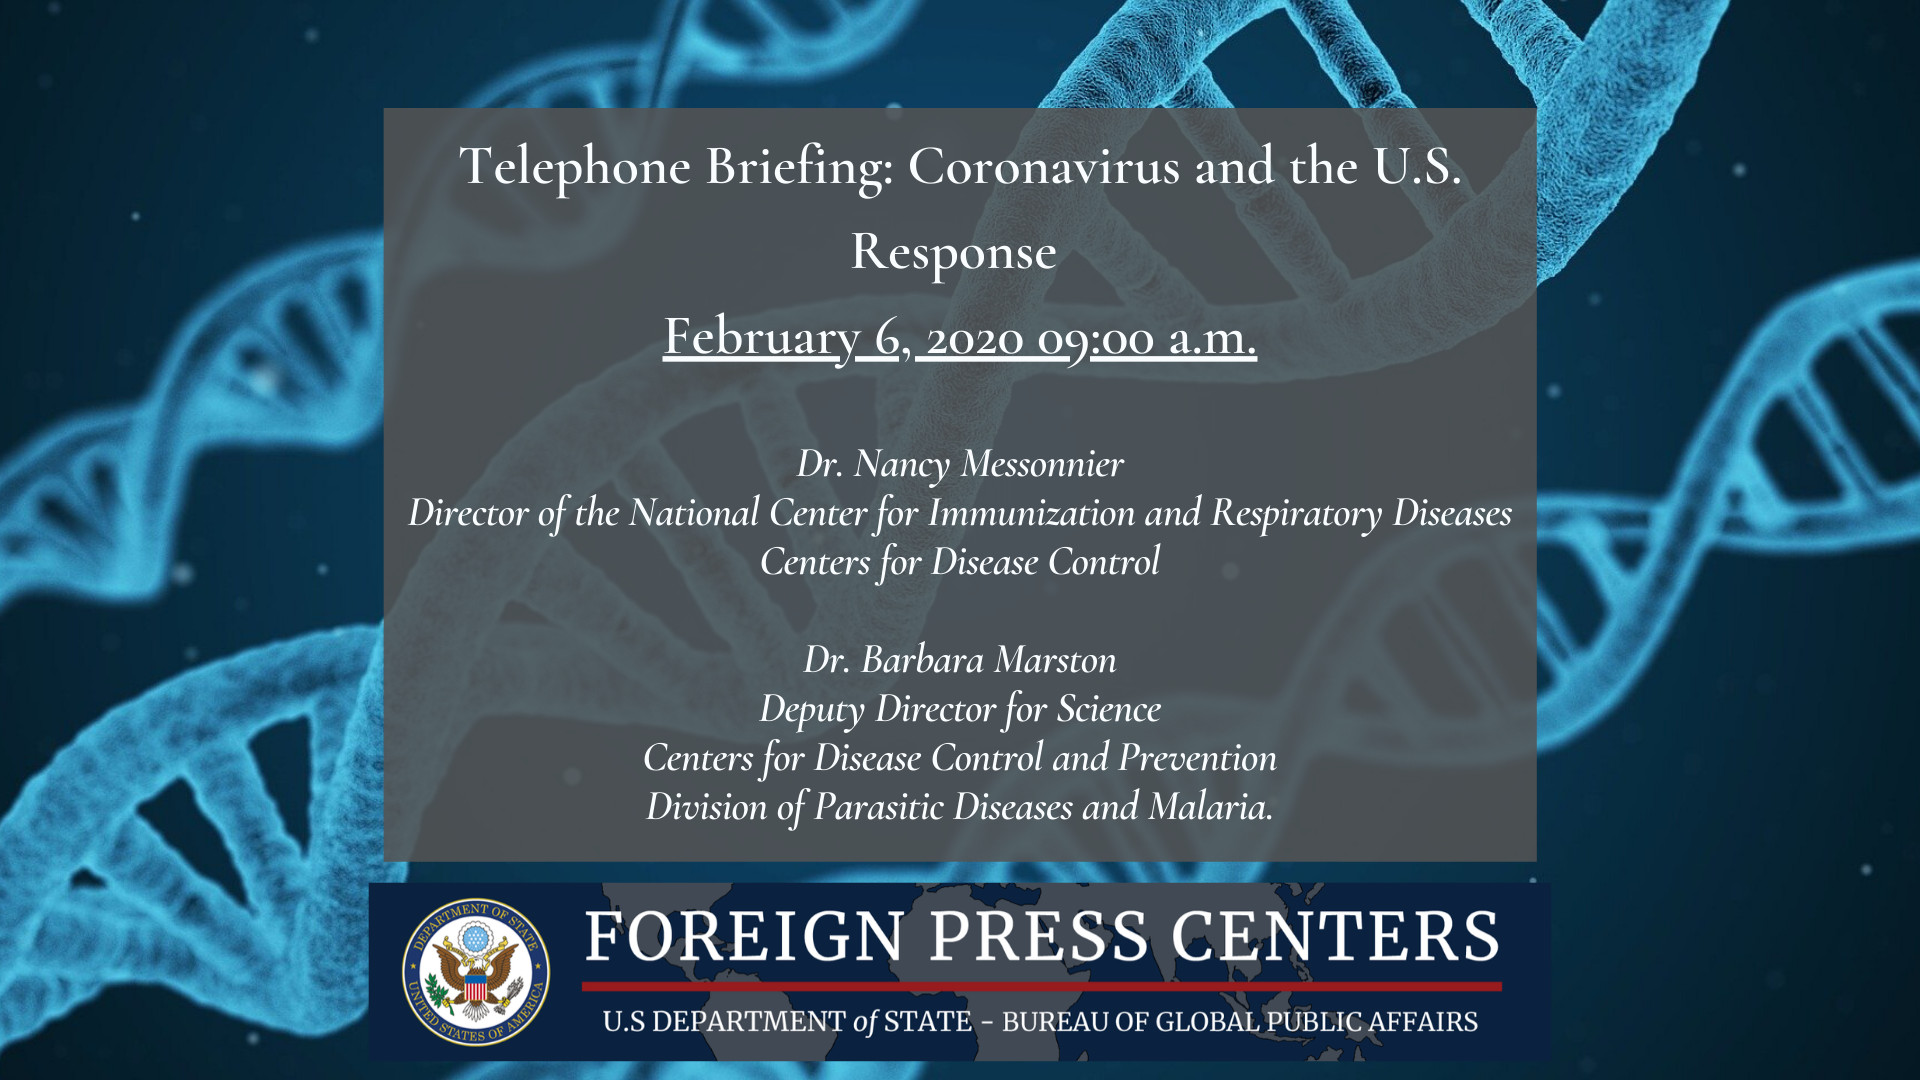 Georgia Department Of Early Care and Learning Easy Telephone Briefing Coronavirus and the U S Response